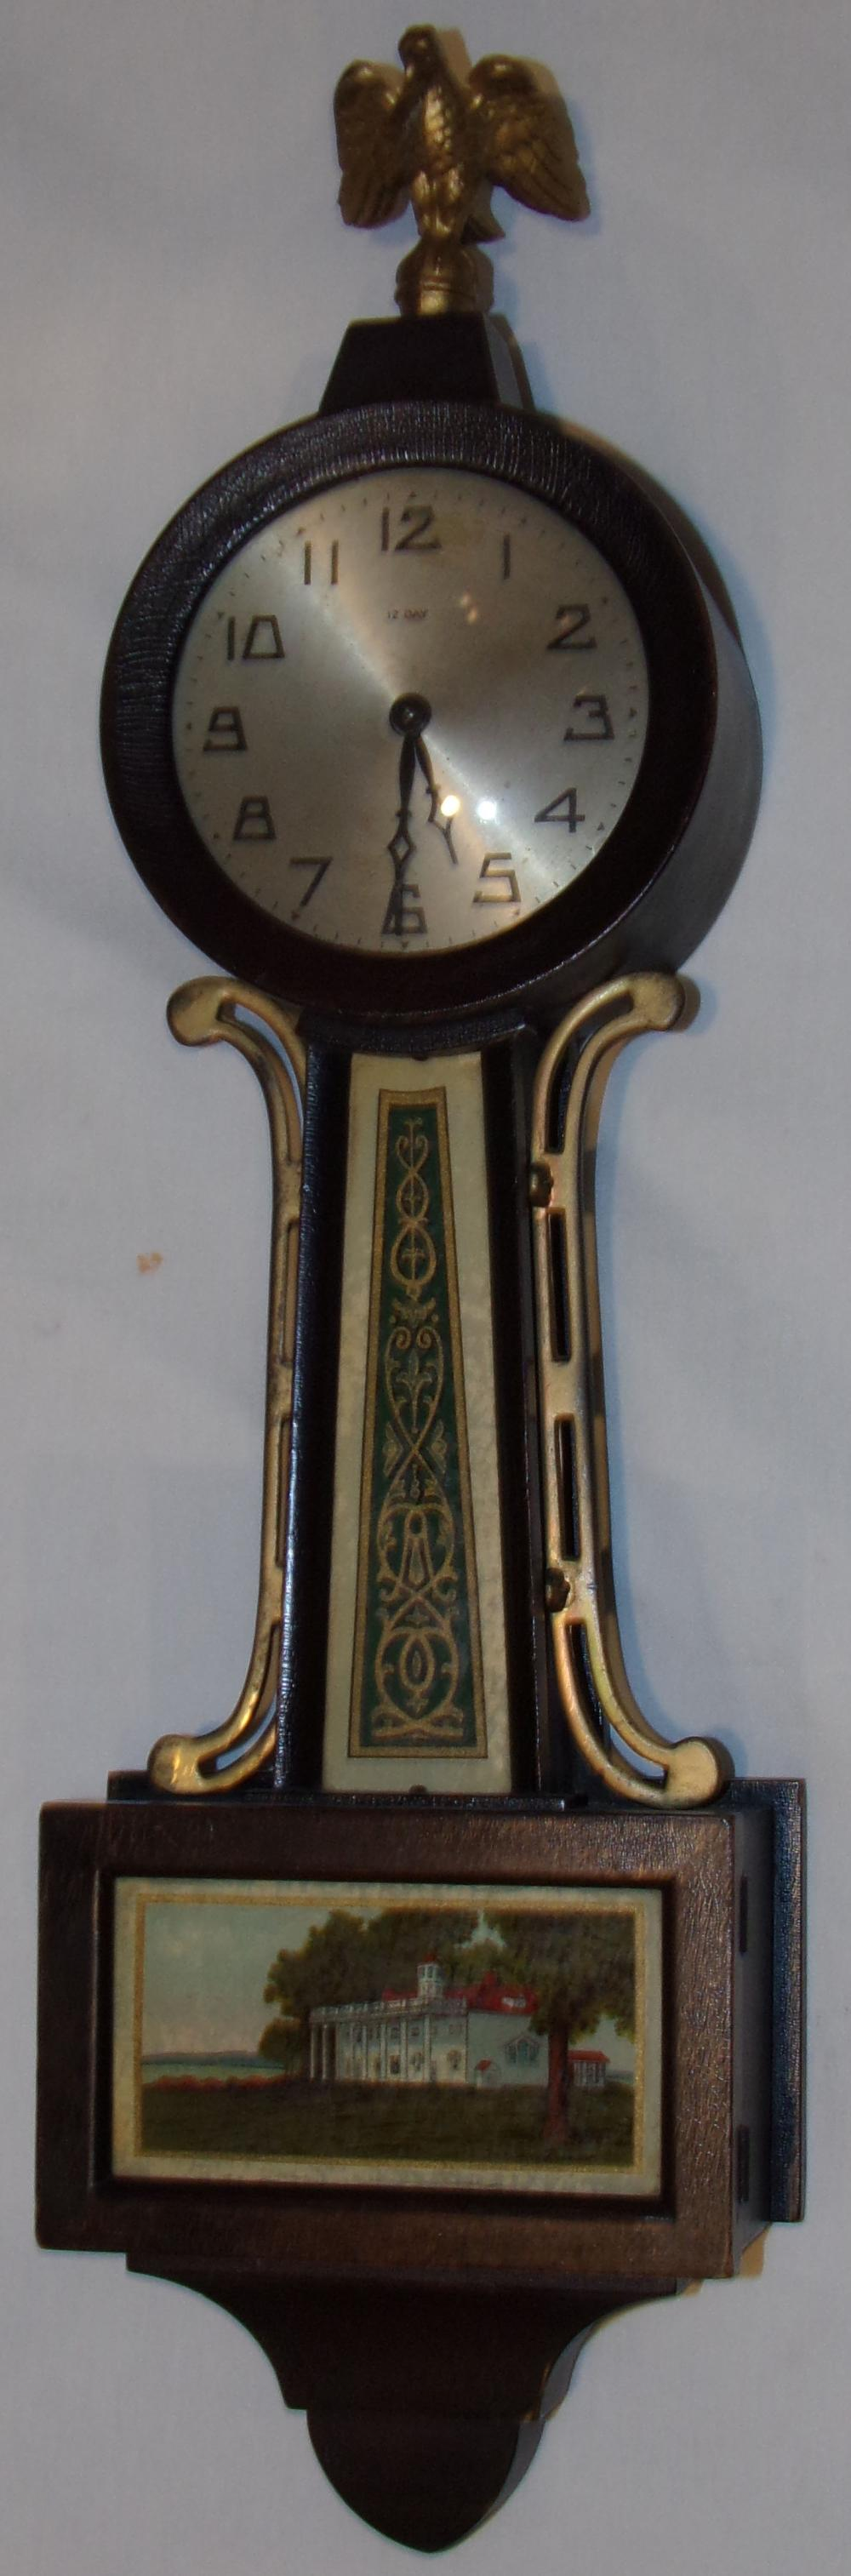 Early 20th C Miniature New Haven Banjo Clock